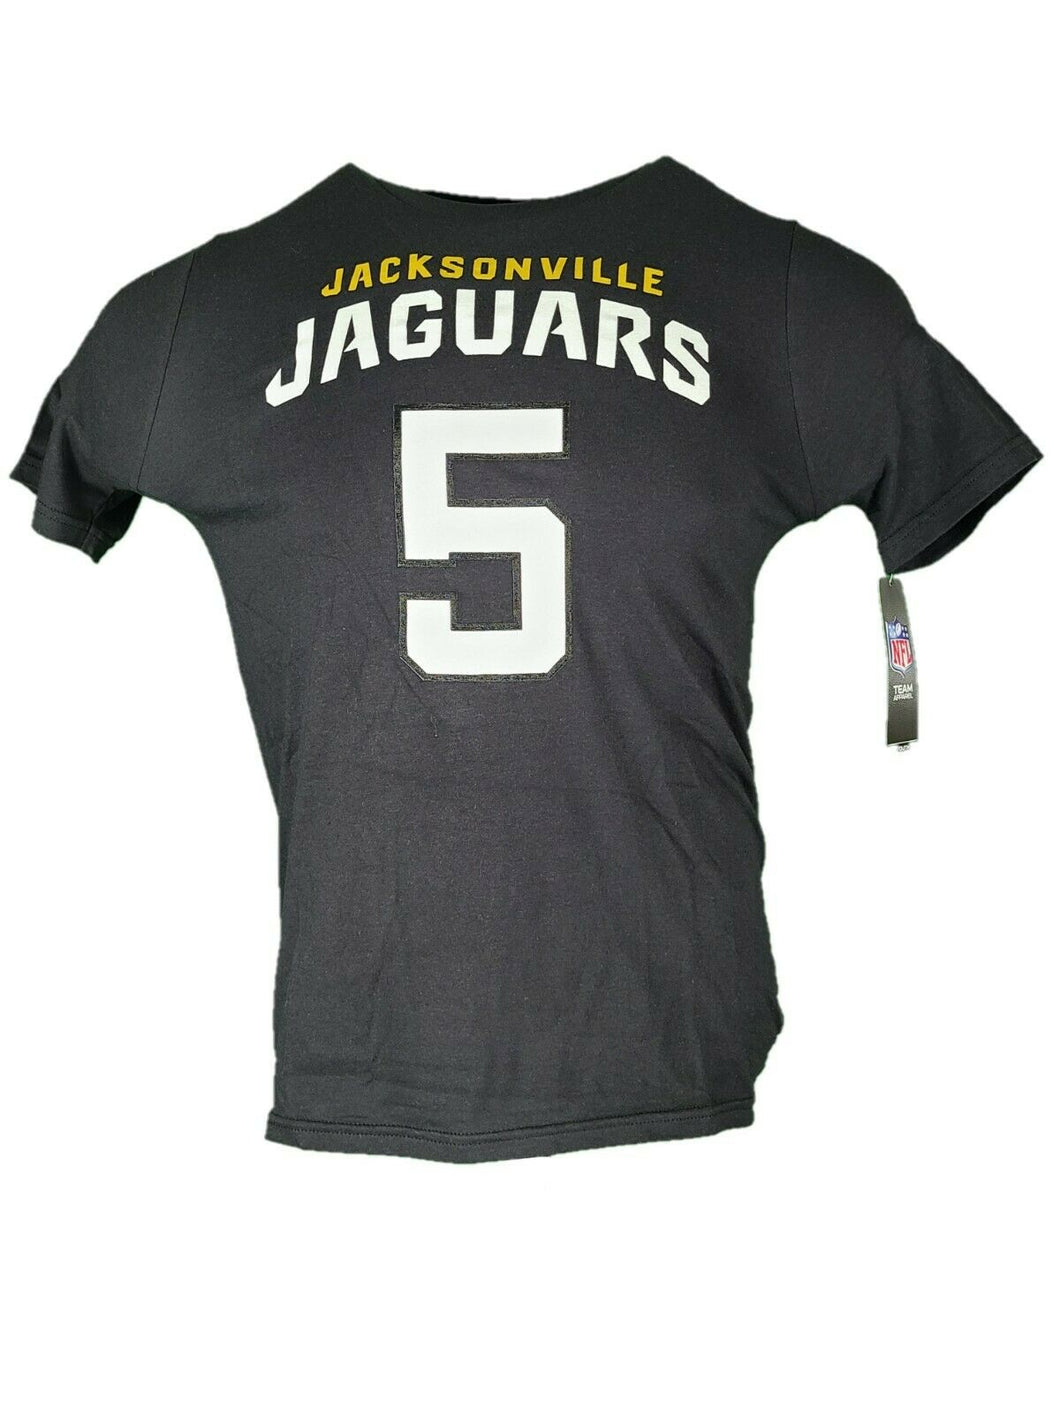 Jacksonville Jaguars Florida T Shirt Bortles Number 5 Youth Size Large New Large